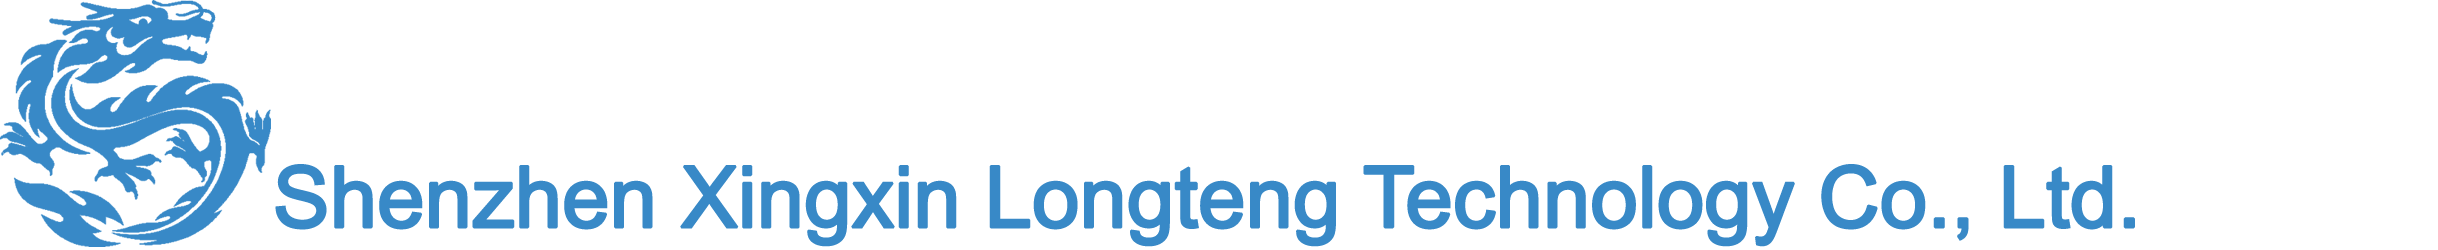 Shenzhen Xingxin Longteng Technology Co., Ltd.